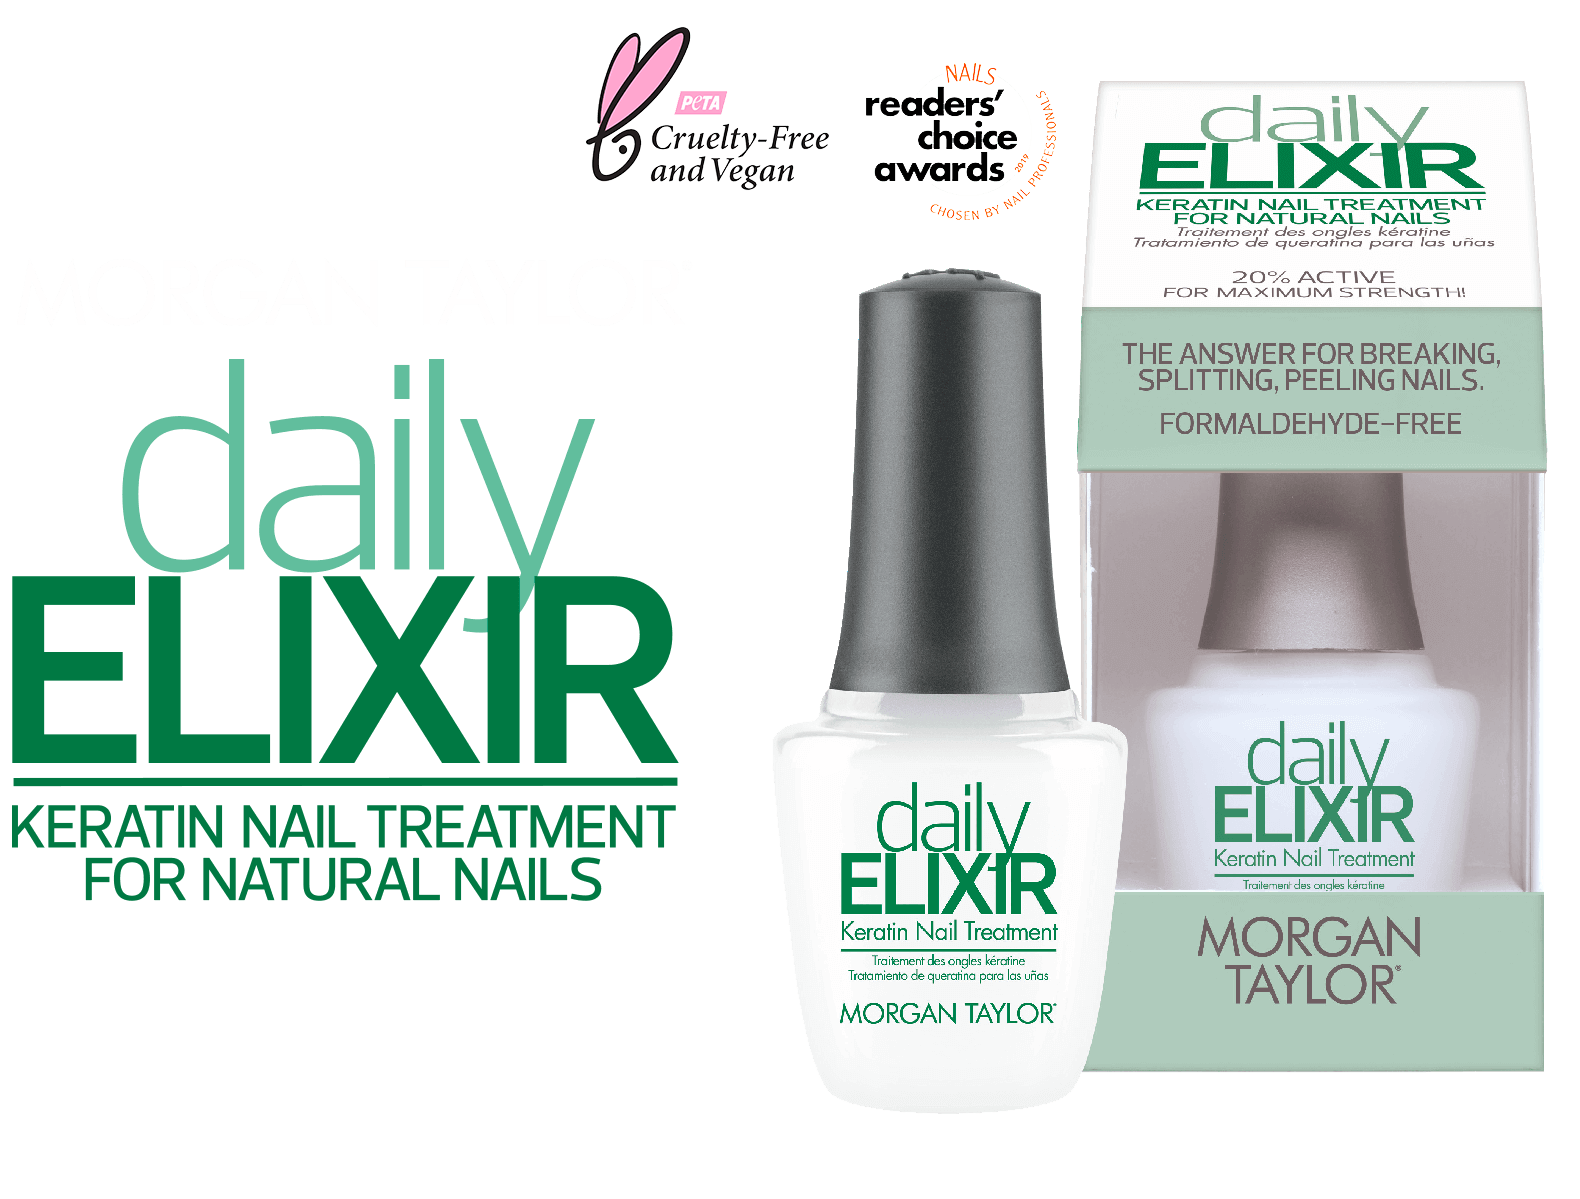 Morgan Taylor Daily Elixir